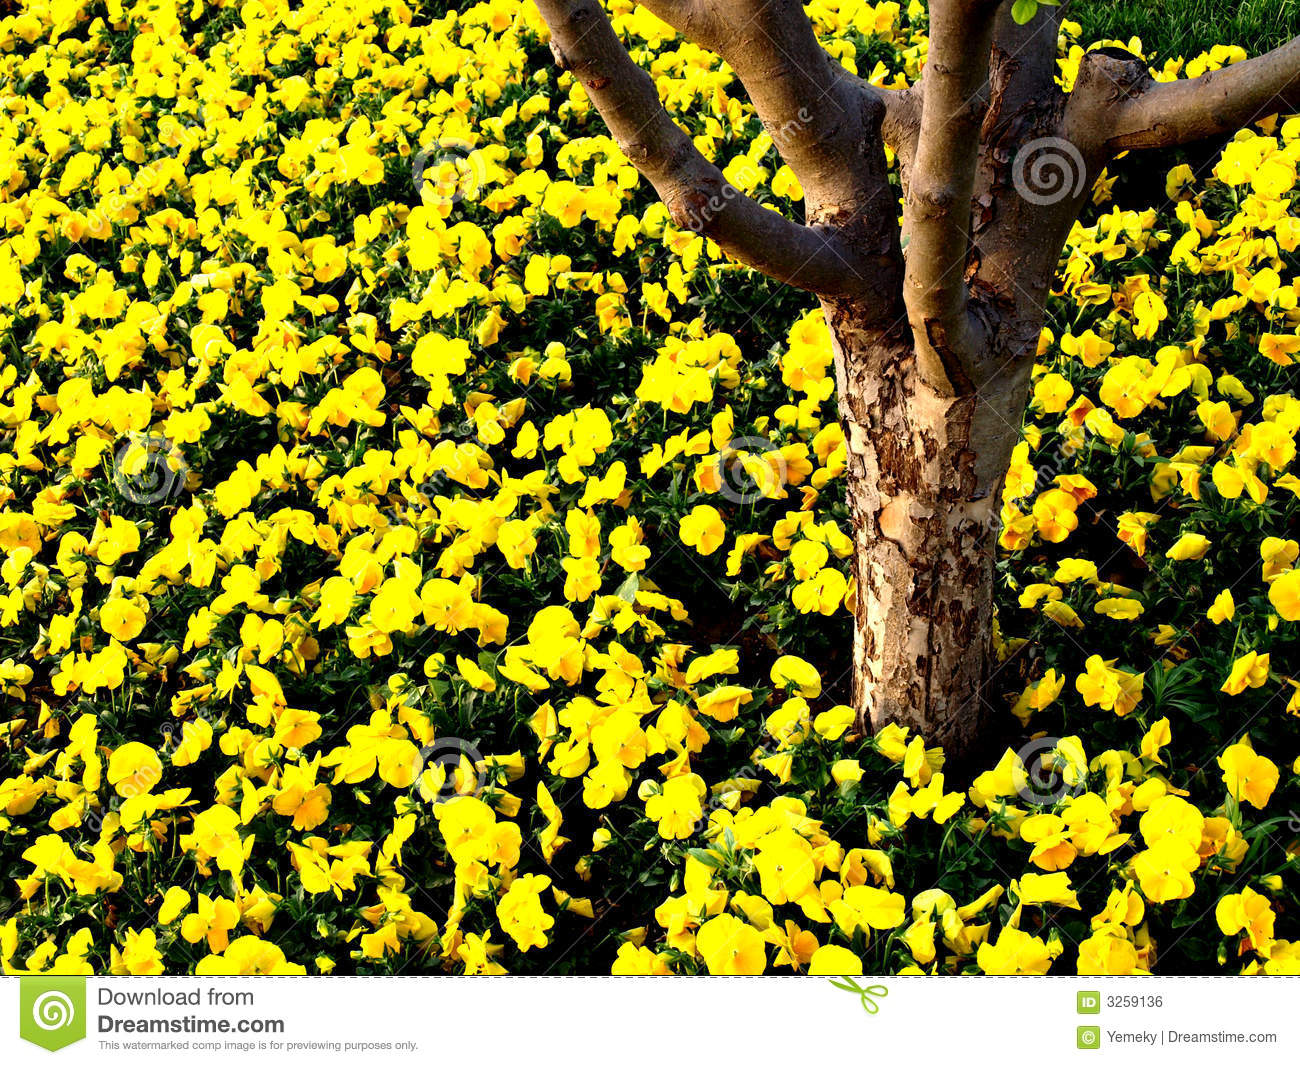 Tree trunk with yellow flowers royalty free stock image image 3259136 - Flowers that grow on tree trunks ...